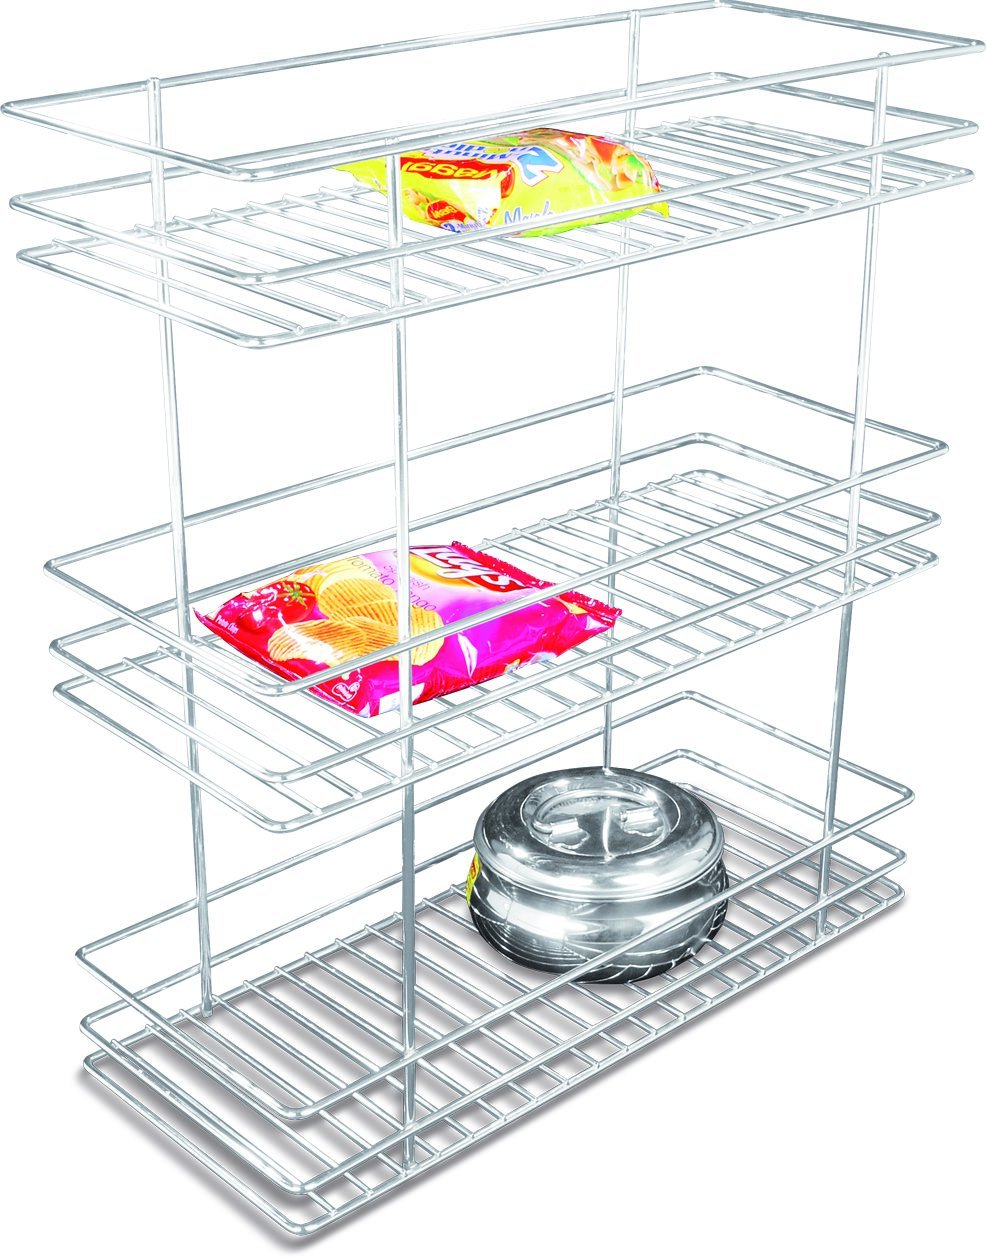 Coffee Stainless Steel Kitchen Mouldar Kitchen Three Shelf Bottle Pullout  Basket, 8 W X 20 D X 21 H Inches, Silver: Amazon.in: Home U0026 Kitchen